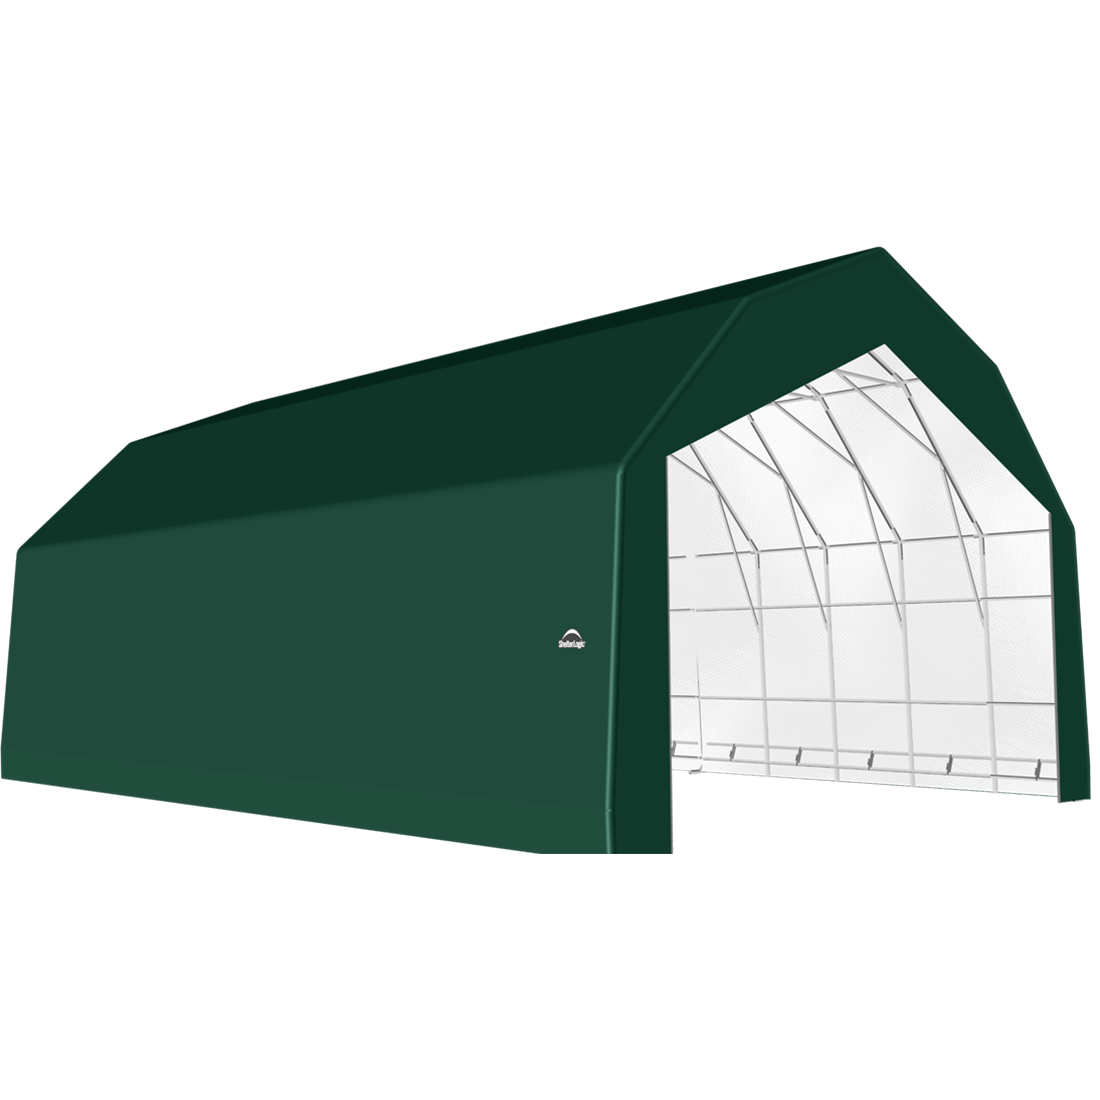 ShelterTech SP Series Barn Shelter, 30 ft. x 36 ft. x 21 ft. Heavy Duty PVC 14.5 oz. Green